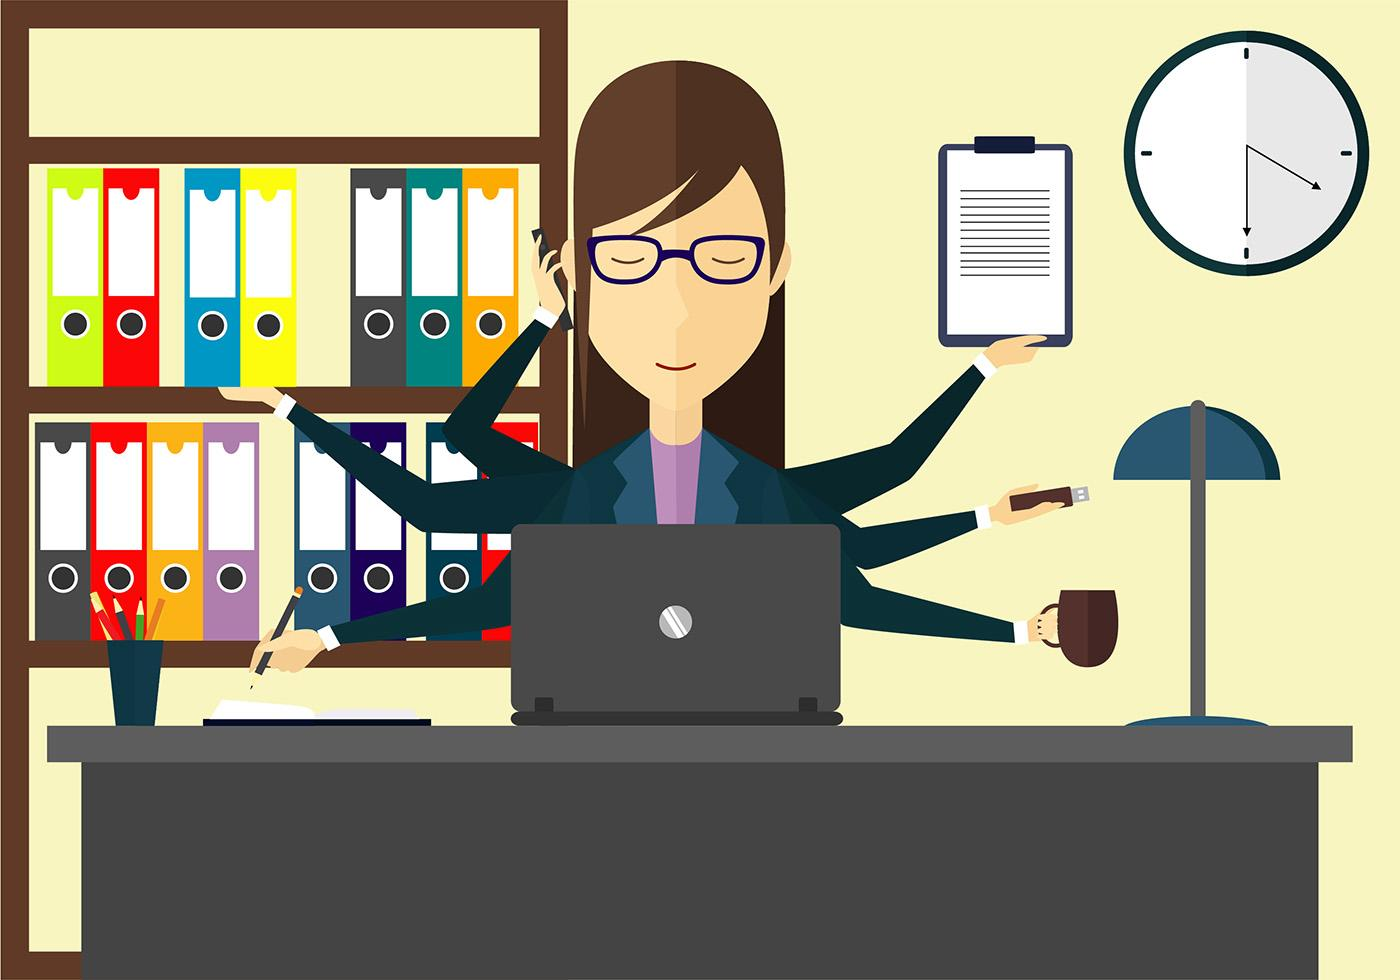 multi-tasking-woman-illustration-free-vector.jpg